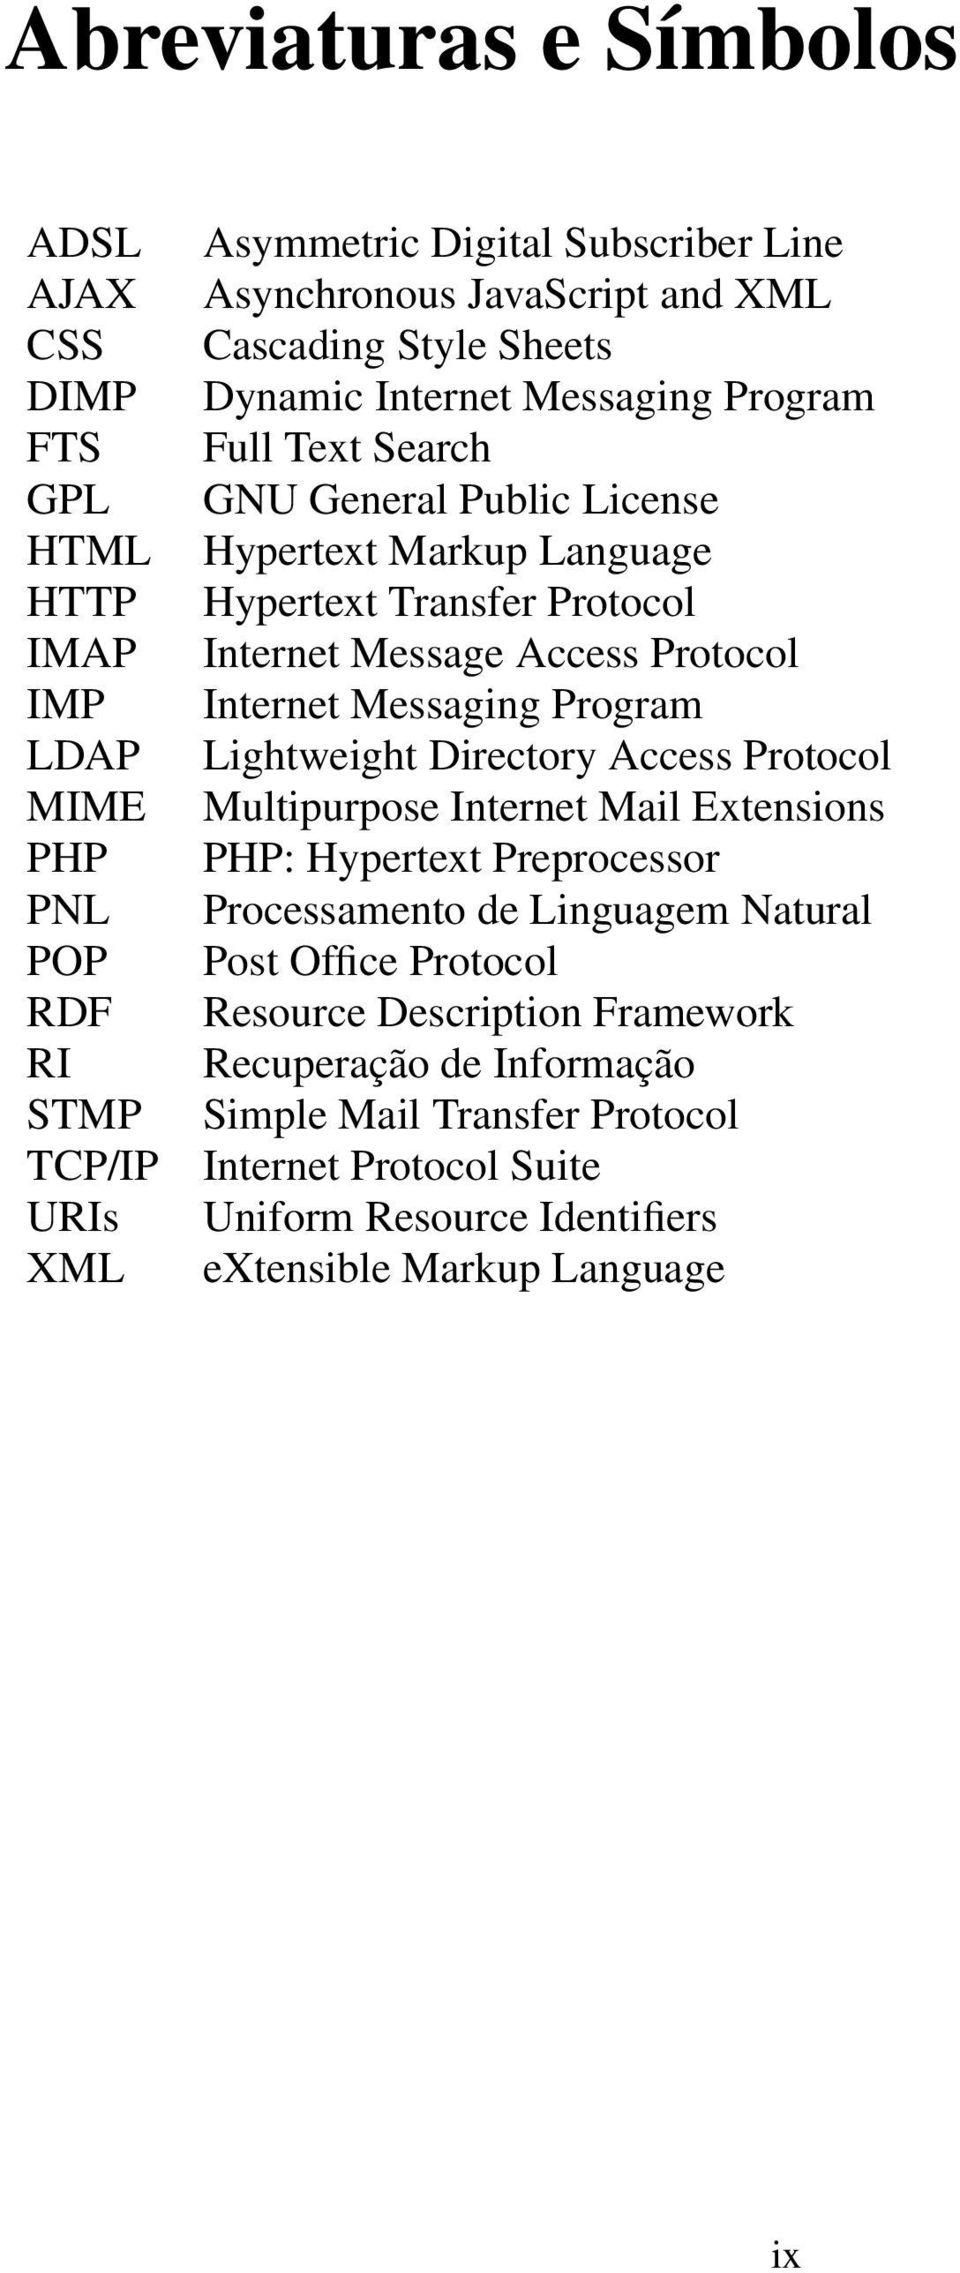 Access Protocol Internet Messaging Program Lightweight Directory Access Protocol Multipurpose Internet Mail Extensions PHP: Hypertext Preprocessor Processamento de Linguagem Natural